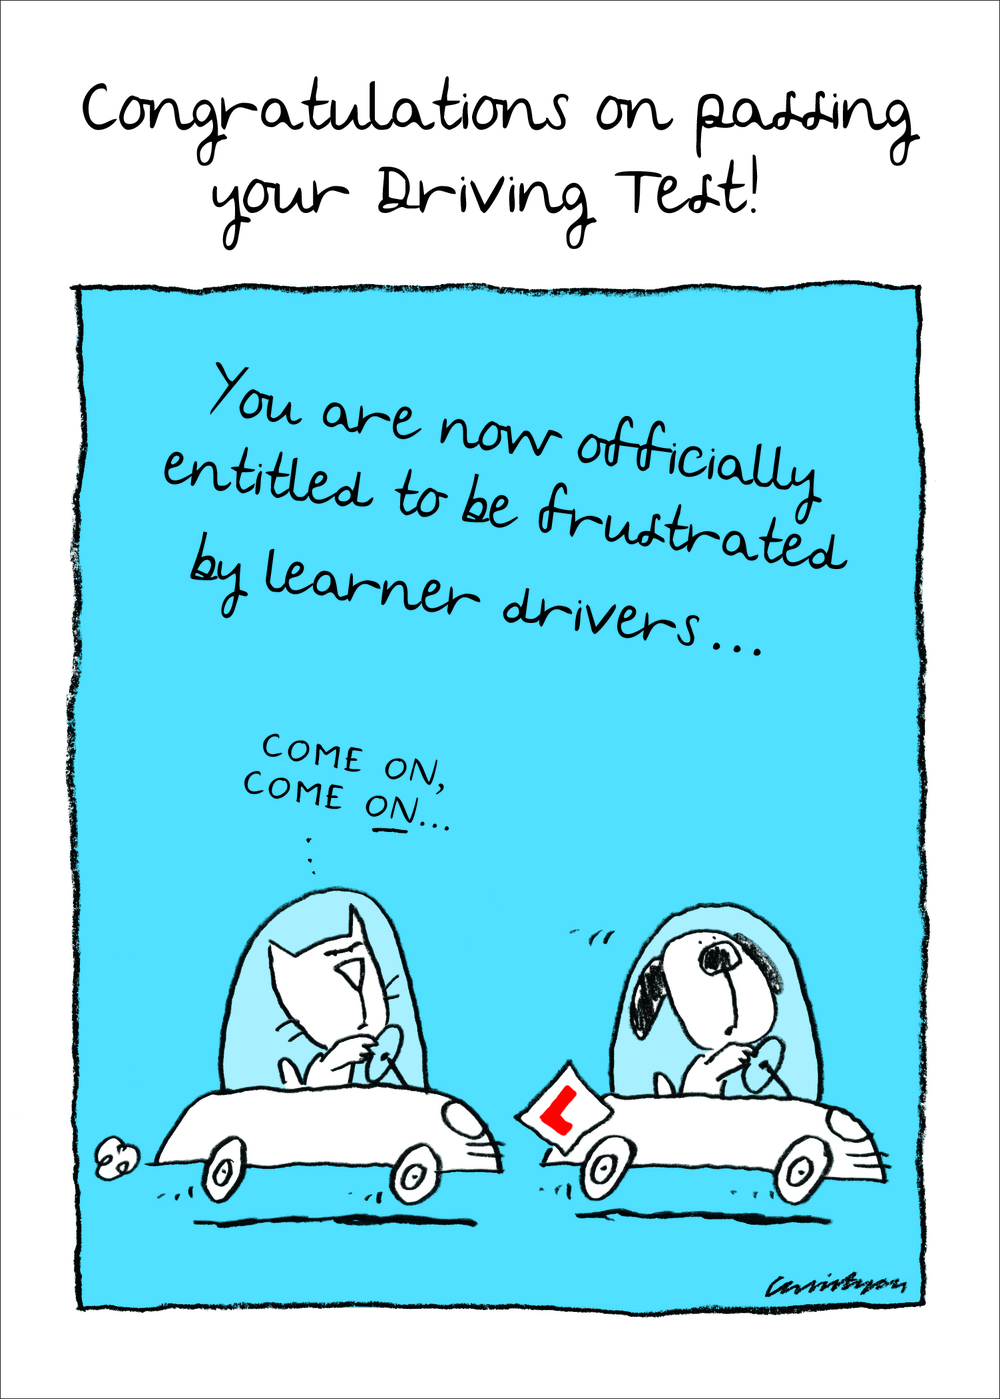 3-Driving Test-frustrated.jpg